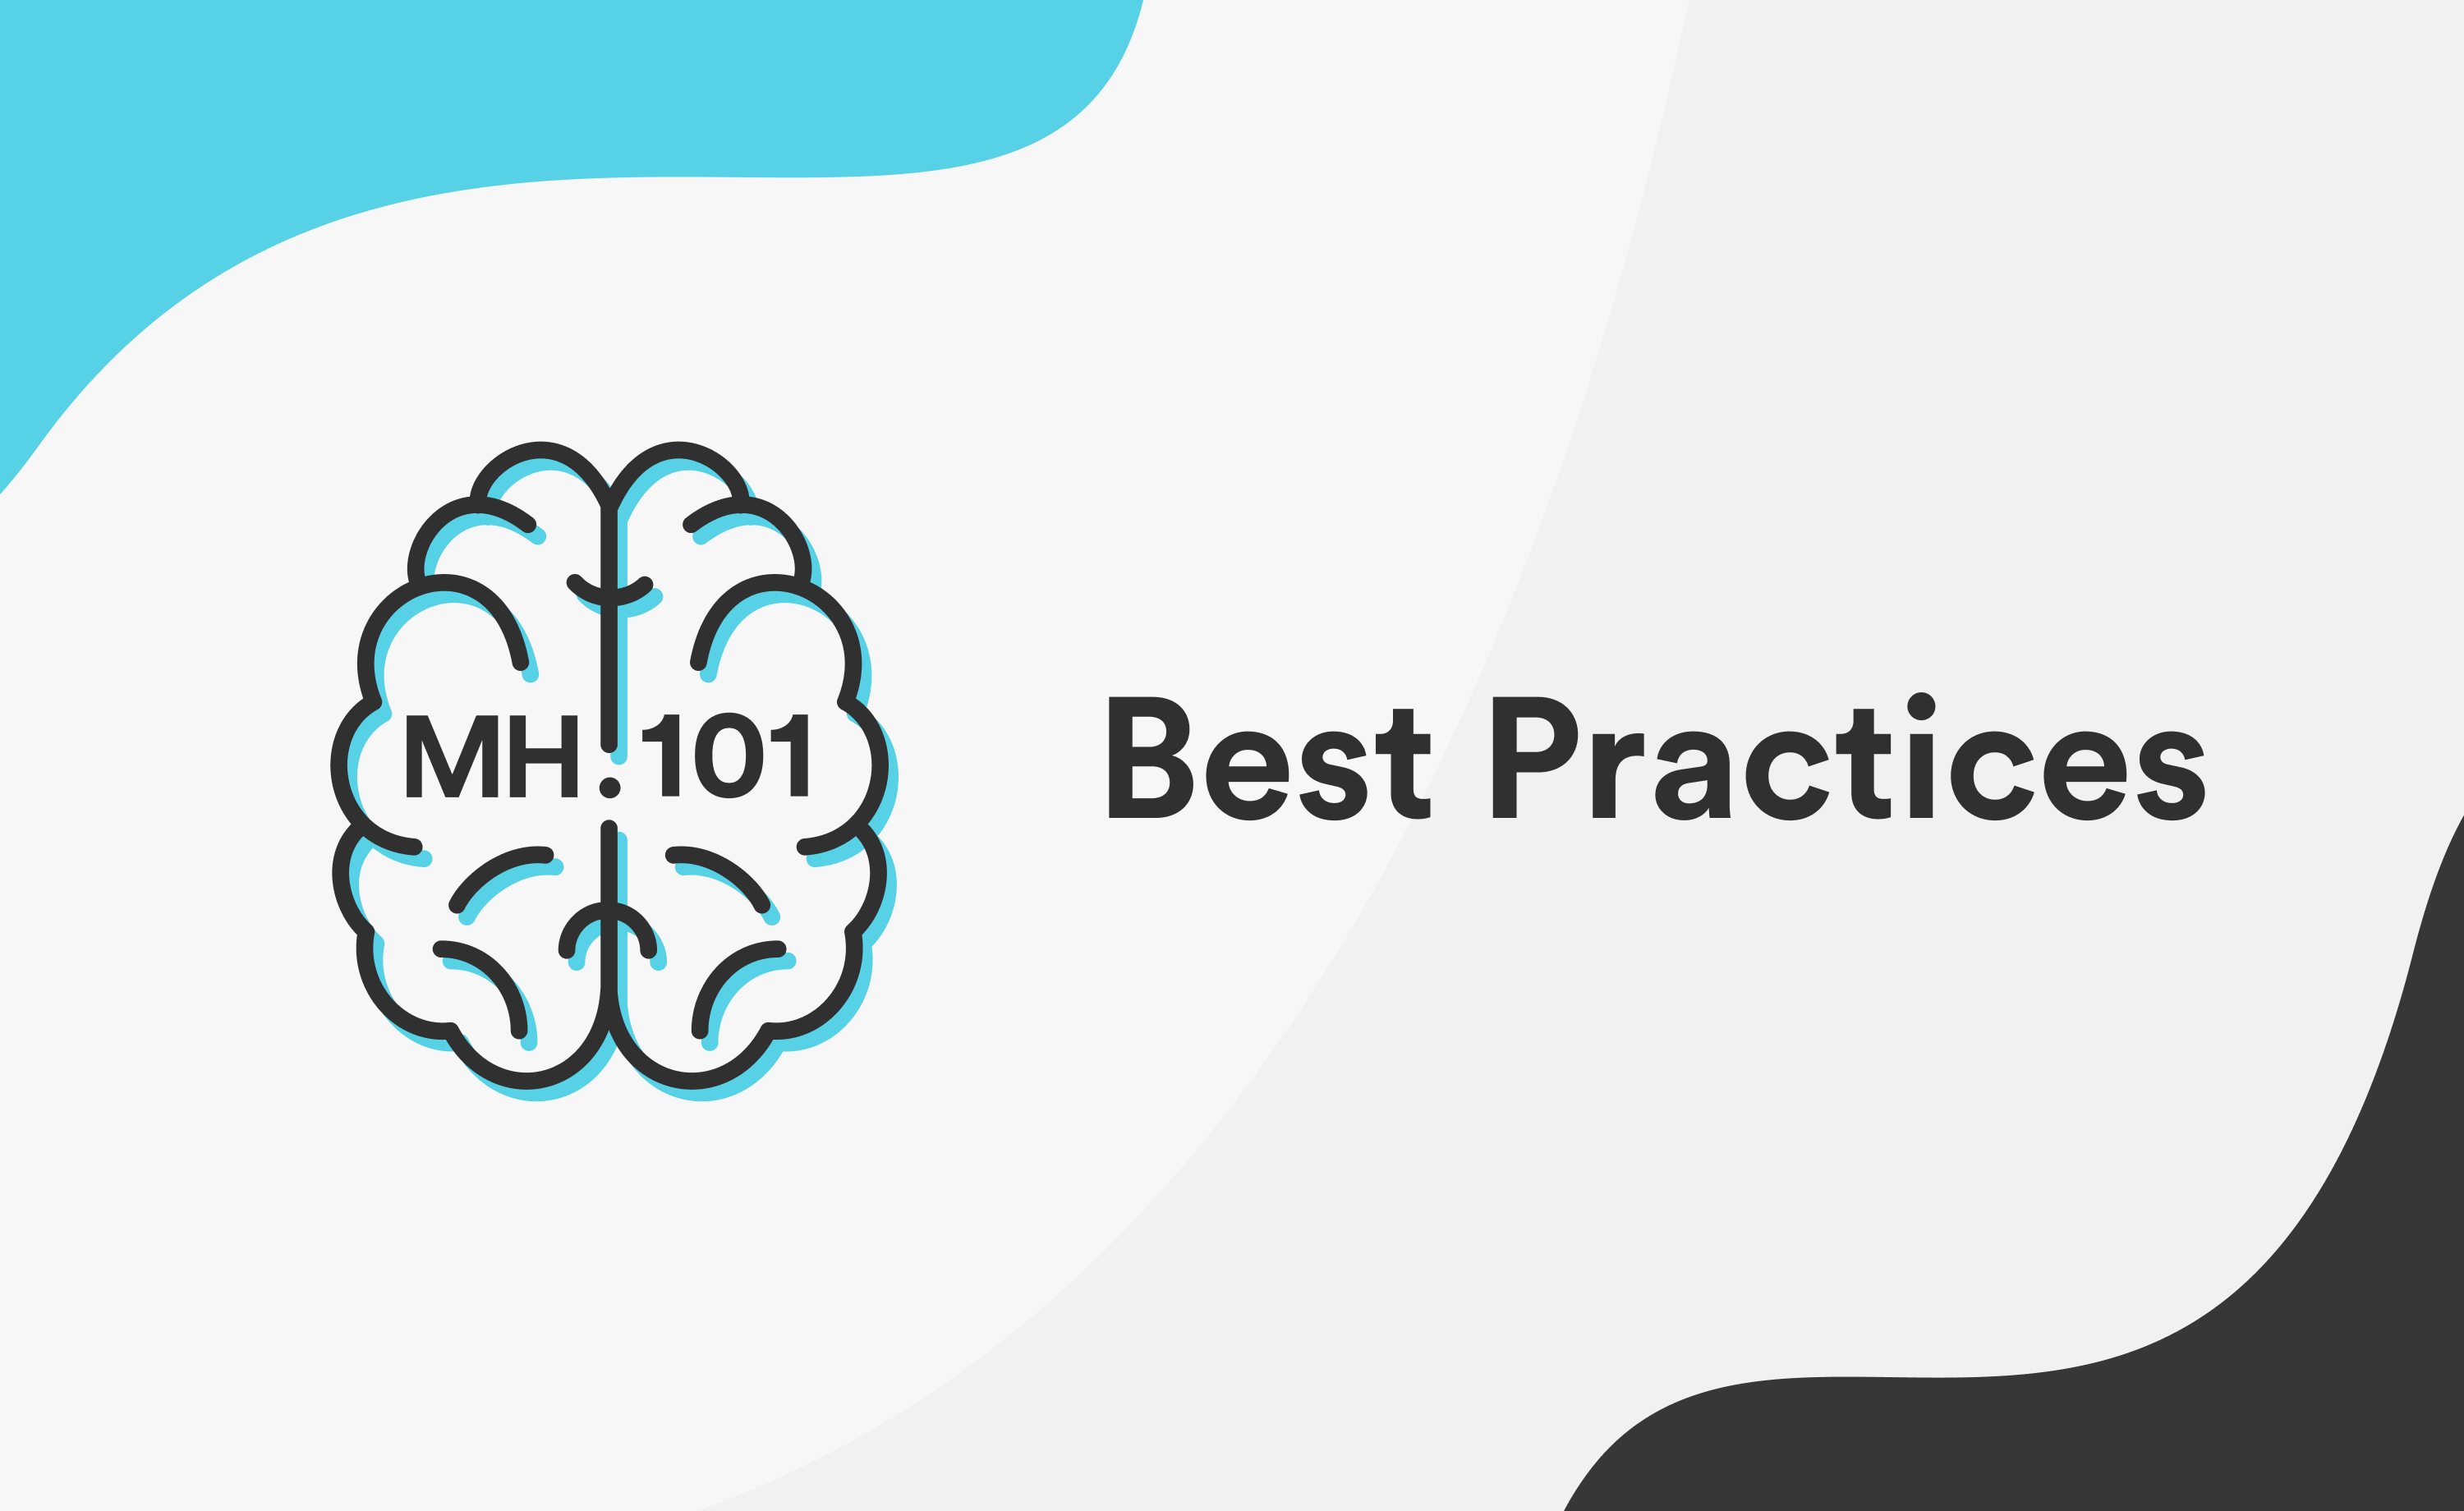 #1 Best Practices - Talking About Mental Health